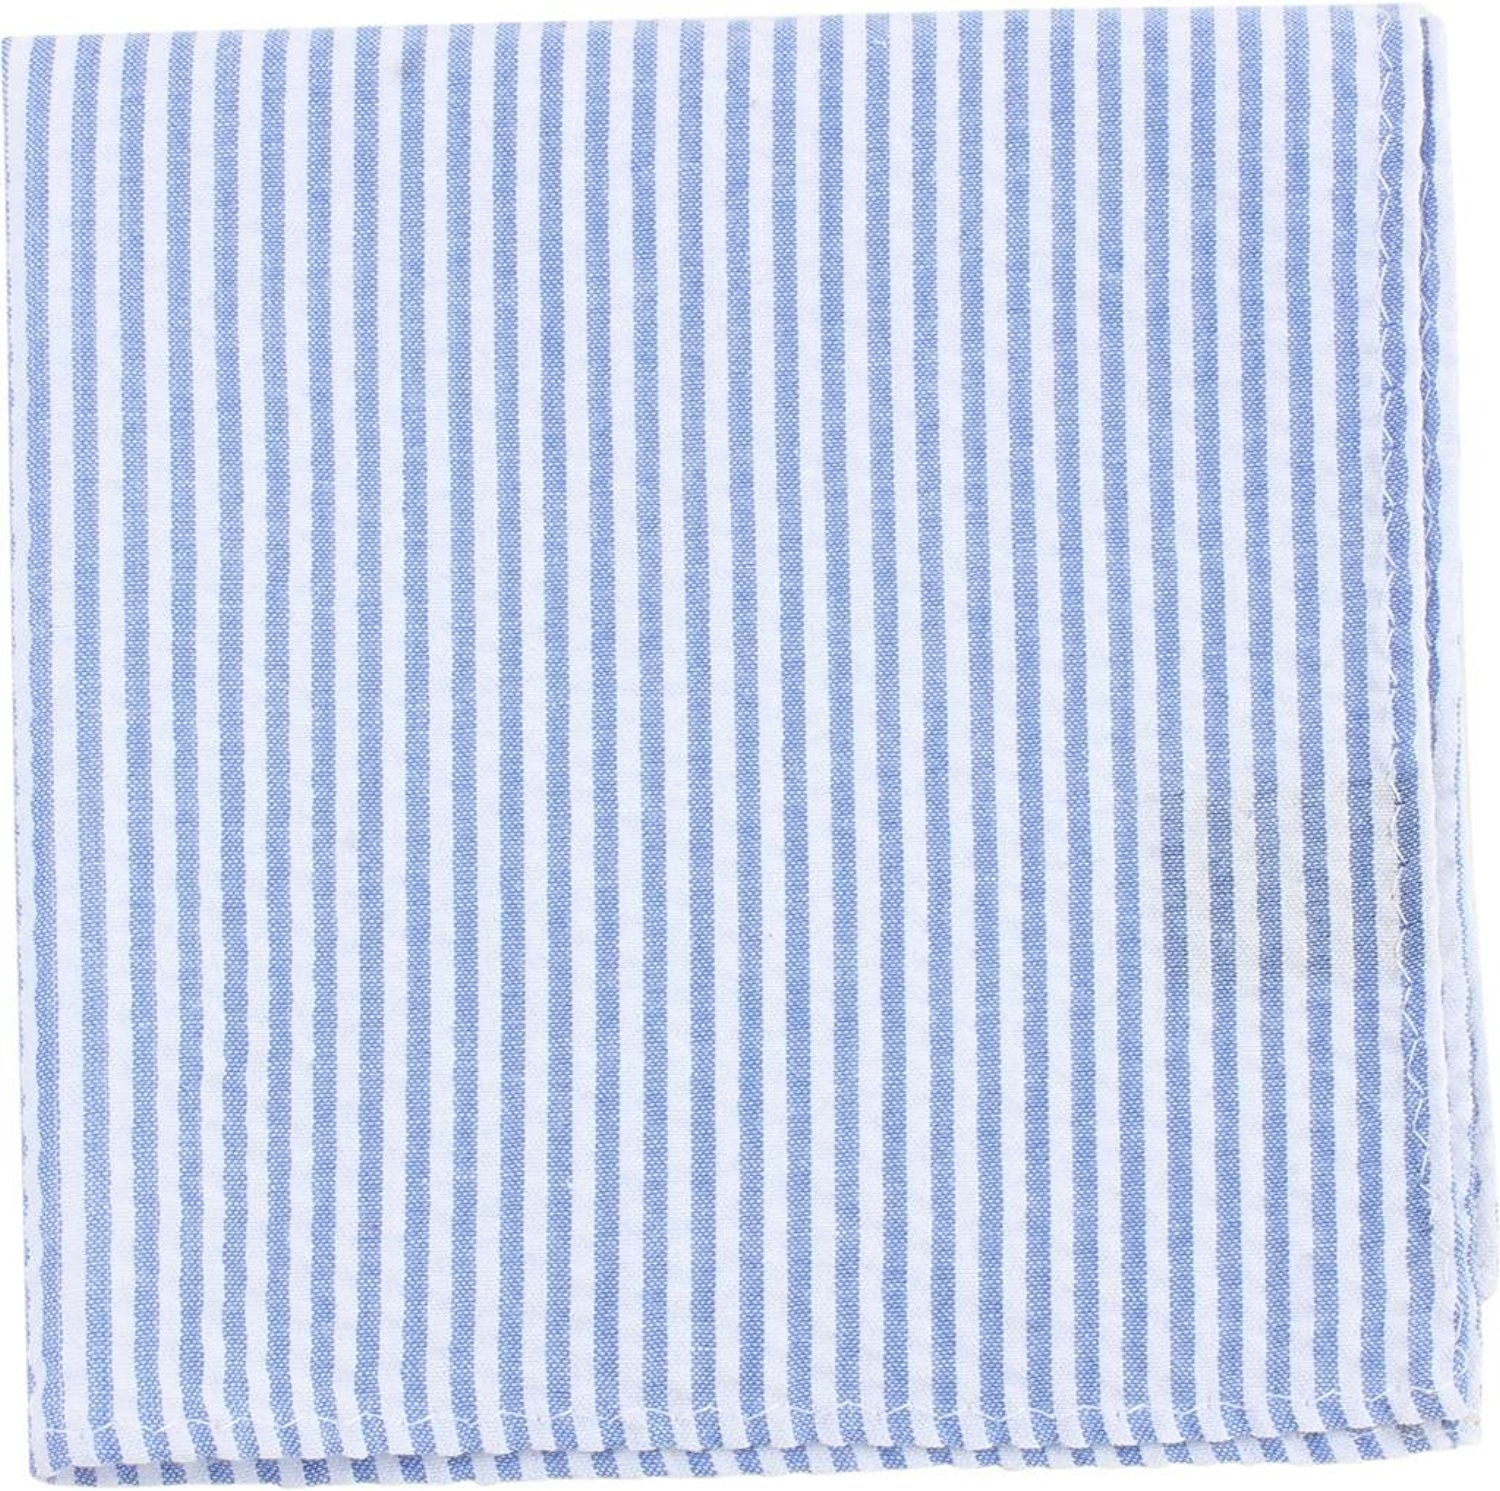 fdd033953d67f Cheap Blue And White Striped Turtleneck, find Blue And White Striped ...